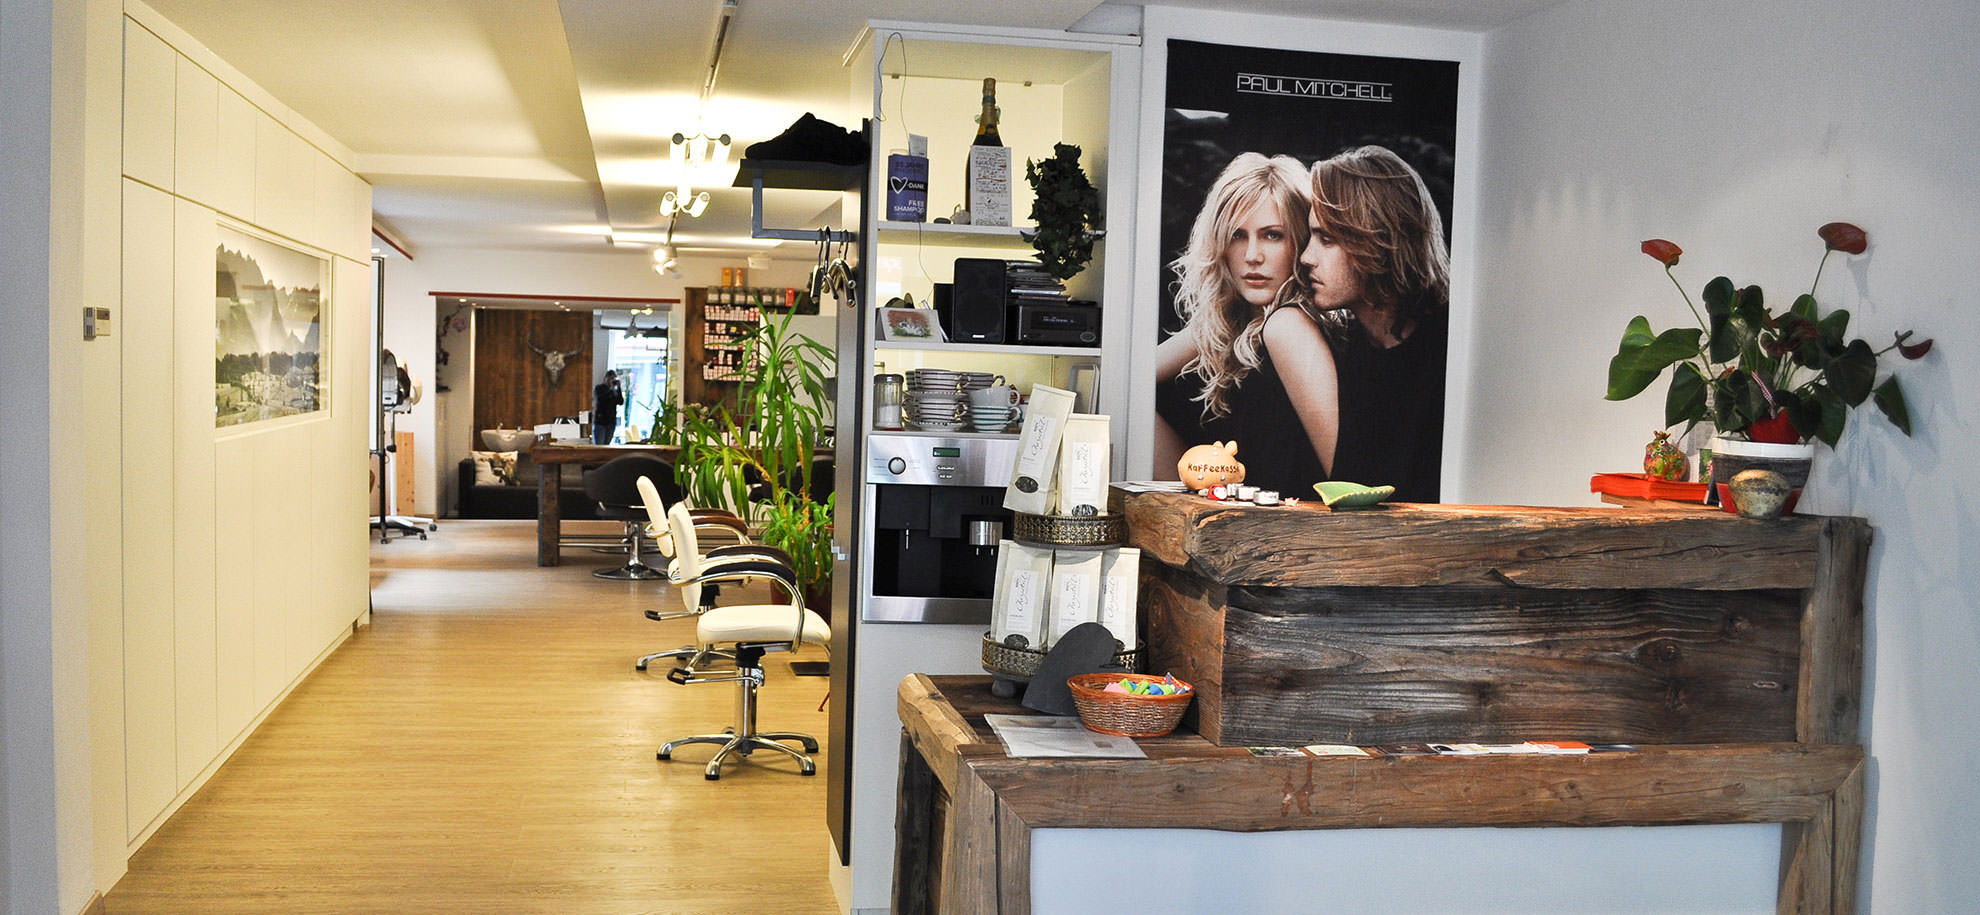 shopping queen steffi steckt im verkehr fest friseursalon detlefsen friseur fleckeby team. Black Bedroom Furniture Sets. Home Design Ideas